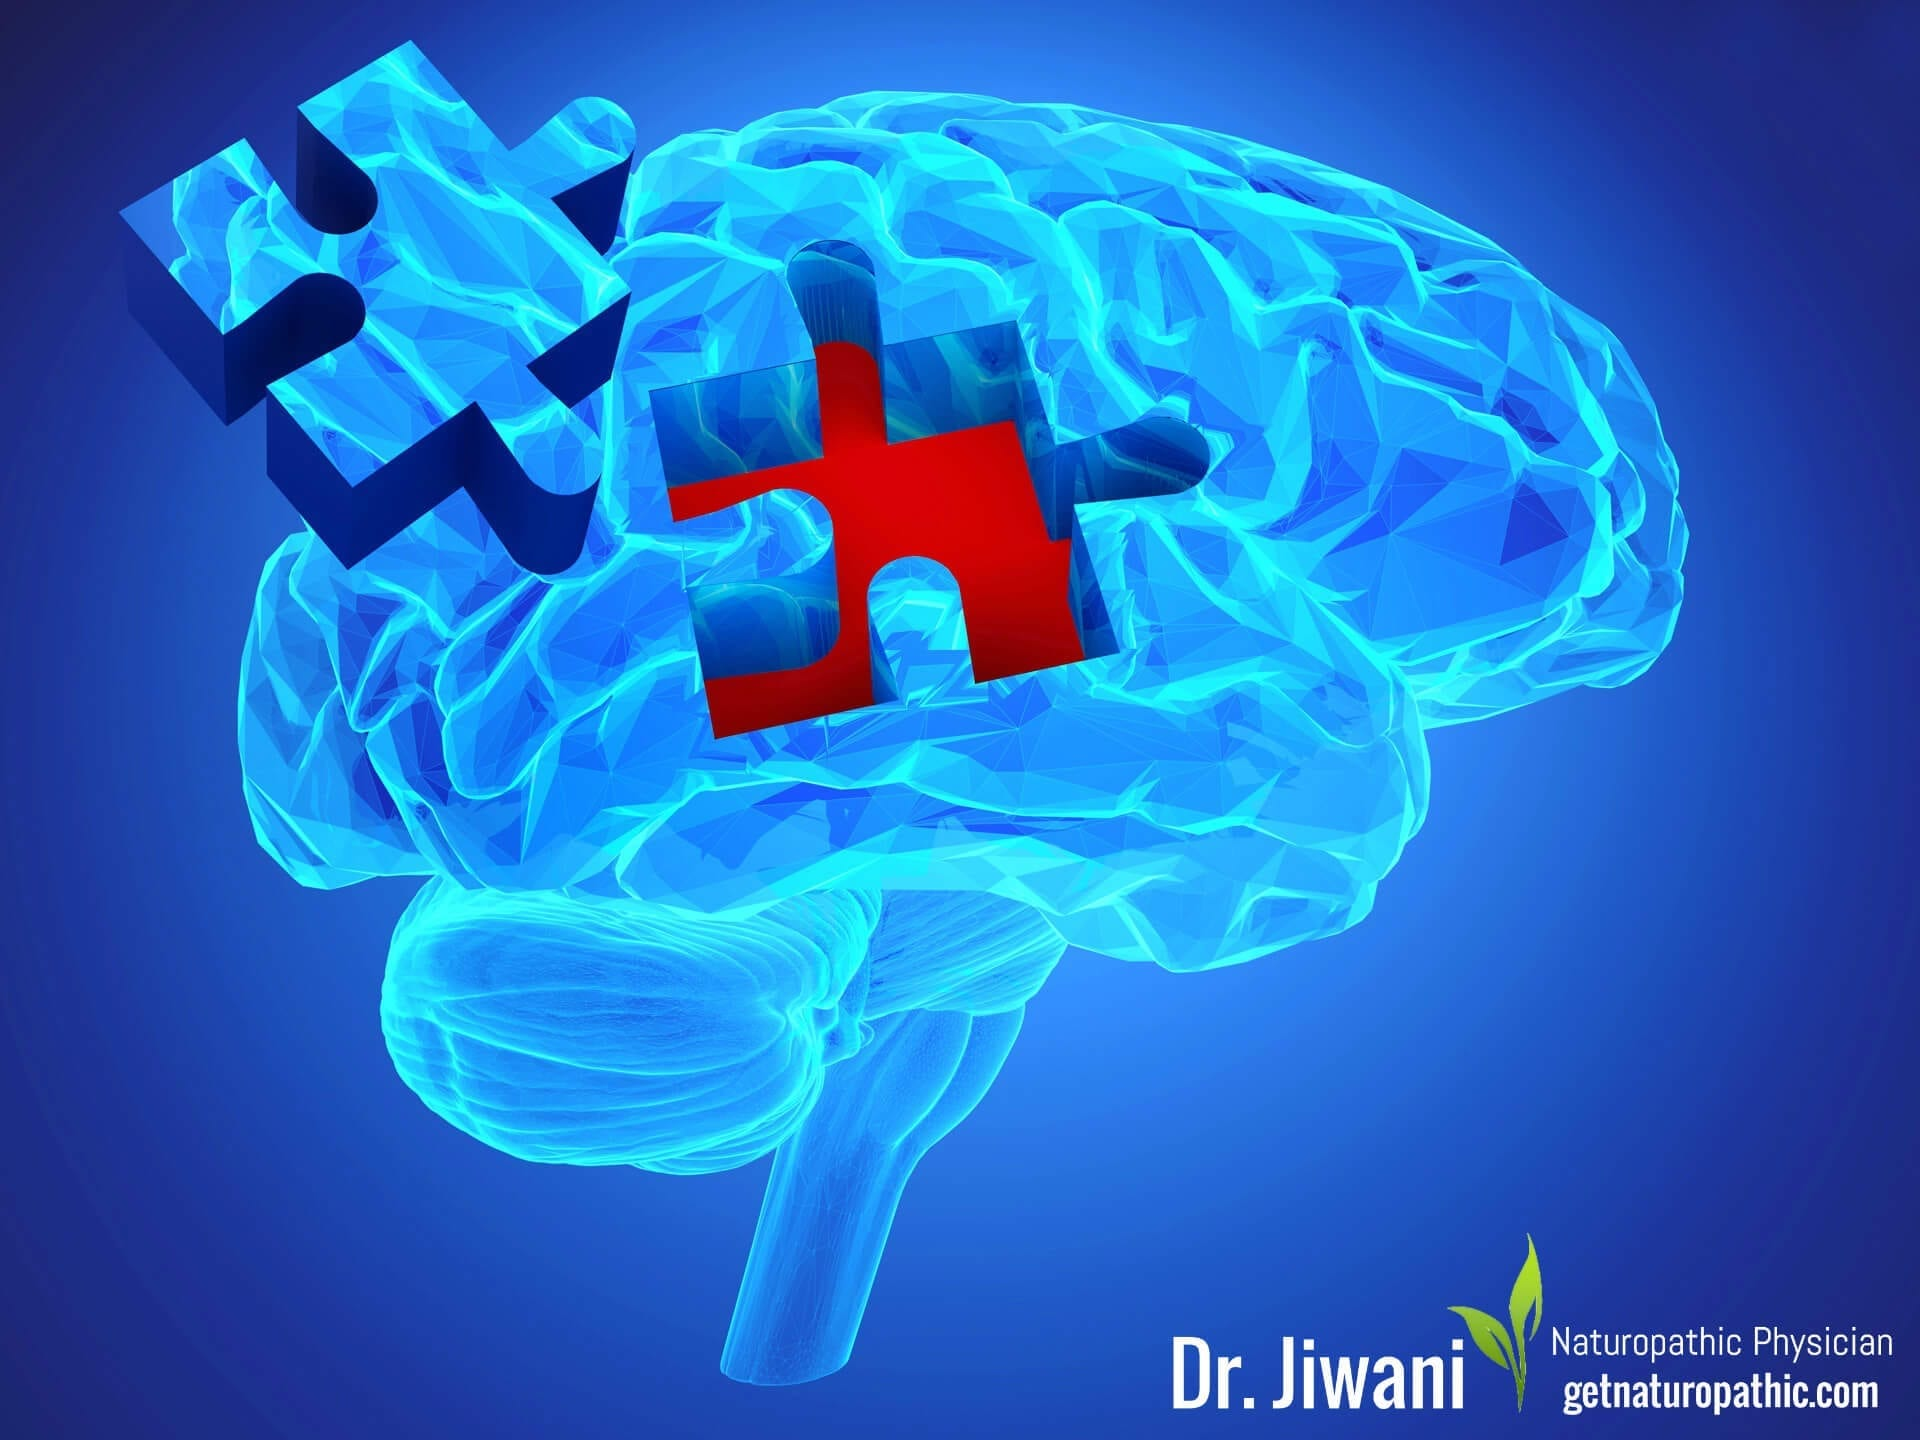 Intermittent Fasting for Health, Energy & Weight Loss Brain Function* | Dr. Jiwani's Naturopathic Nuggets Blog